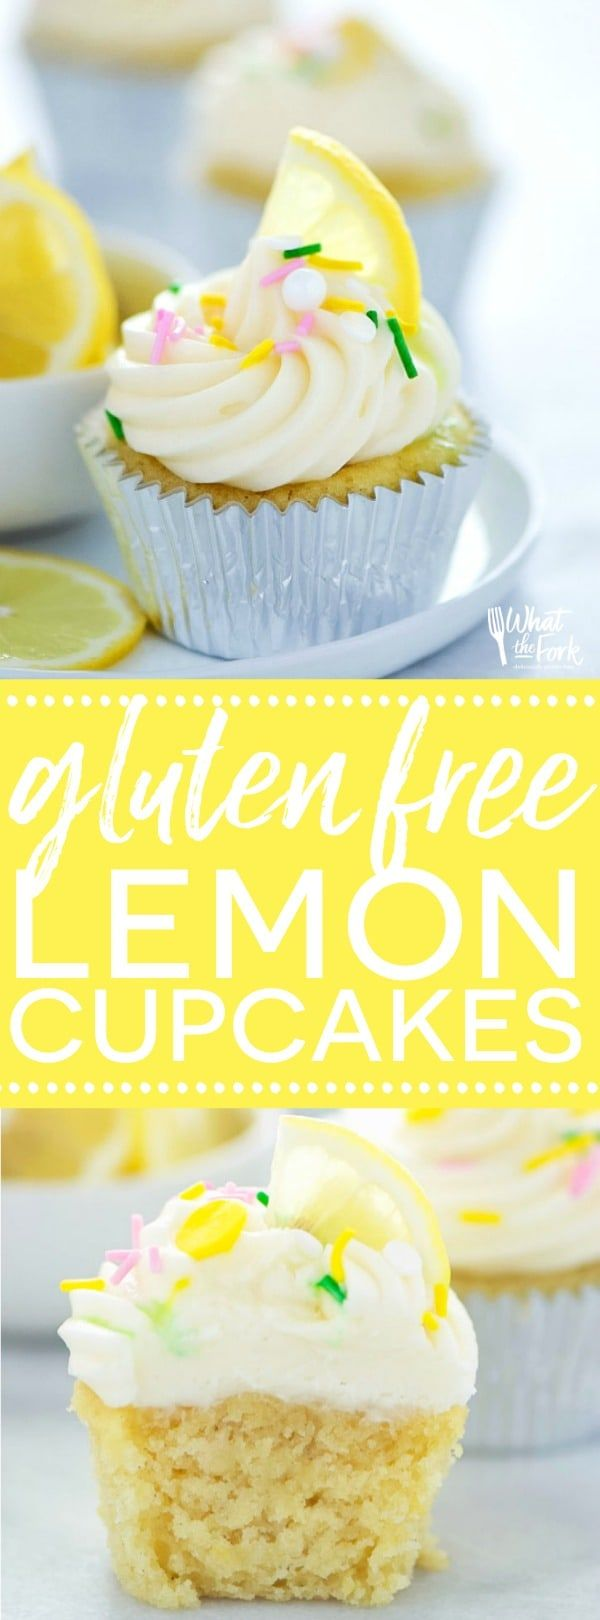 The Best Gluten Free Lemon Cupcakes and Giveaway